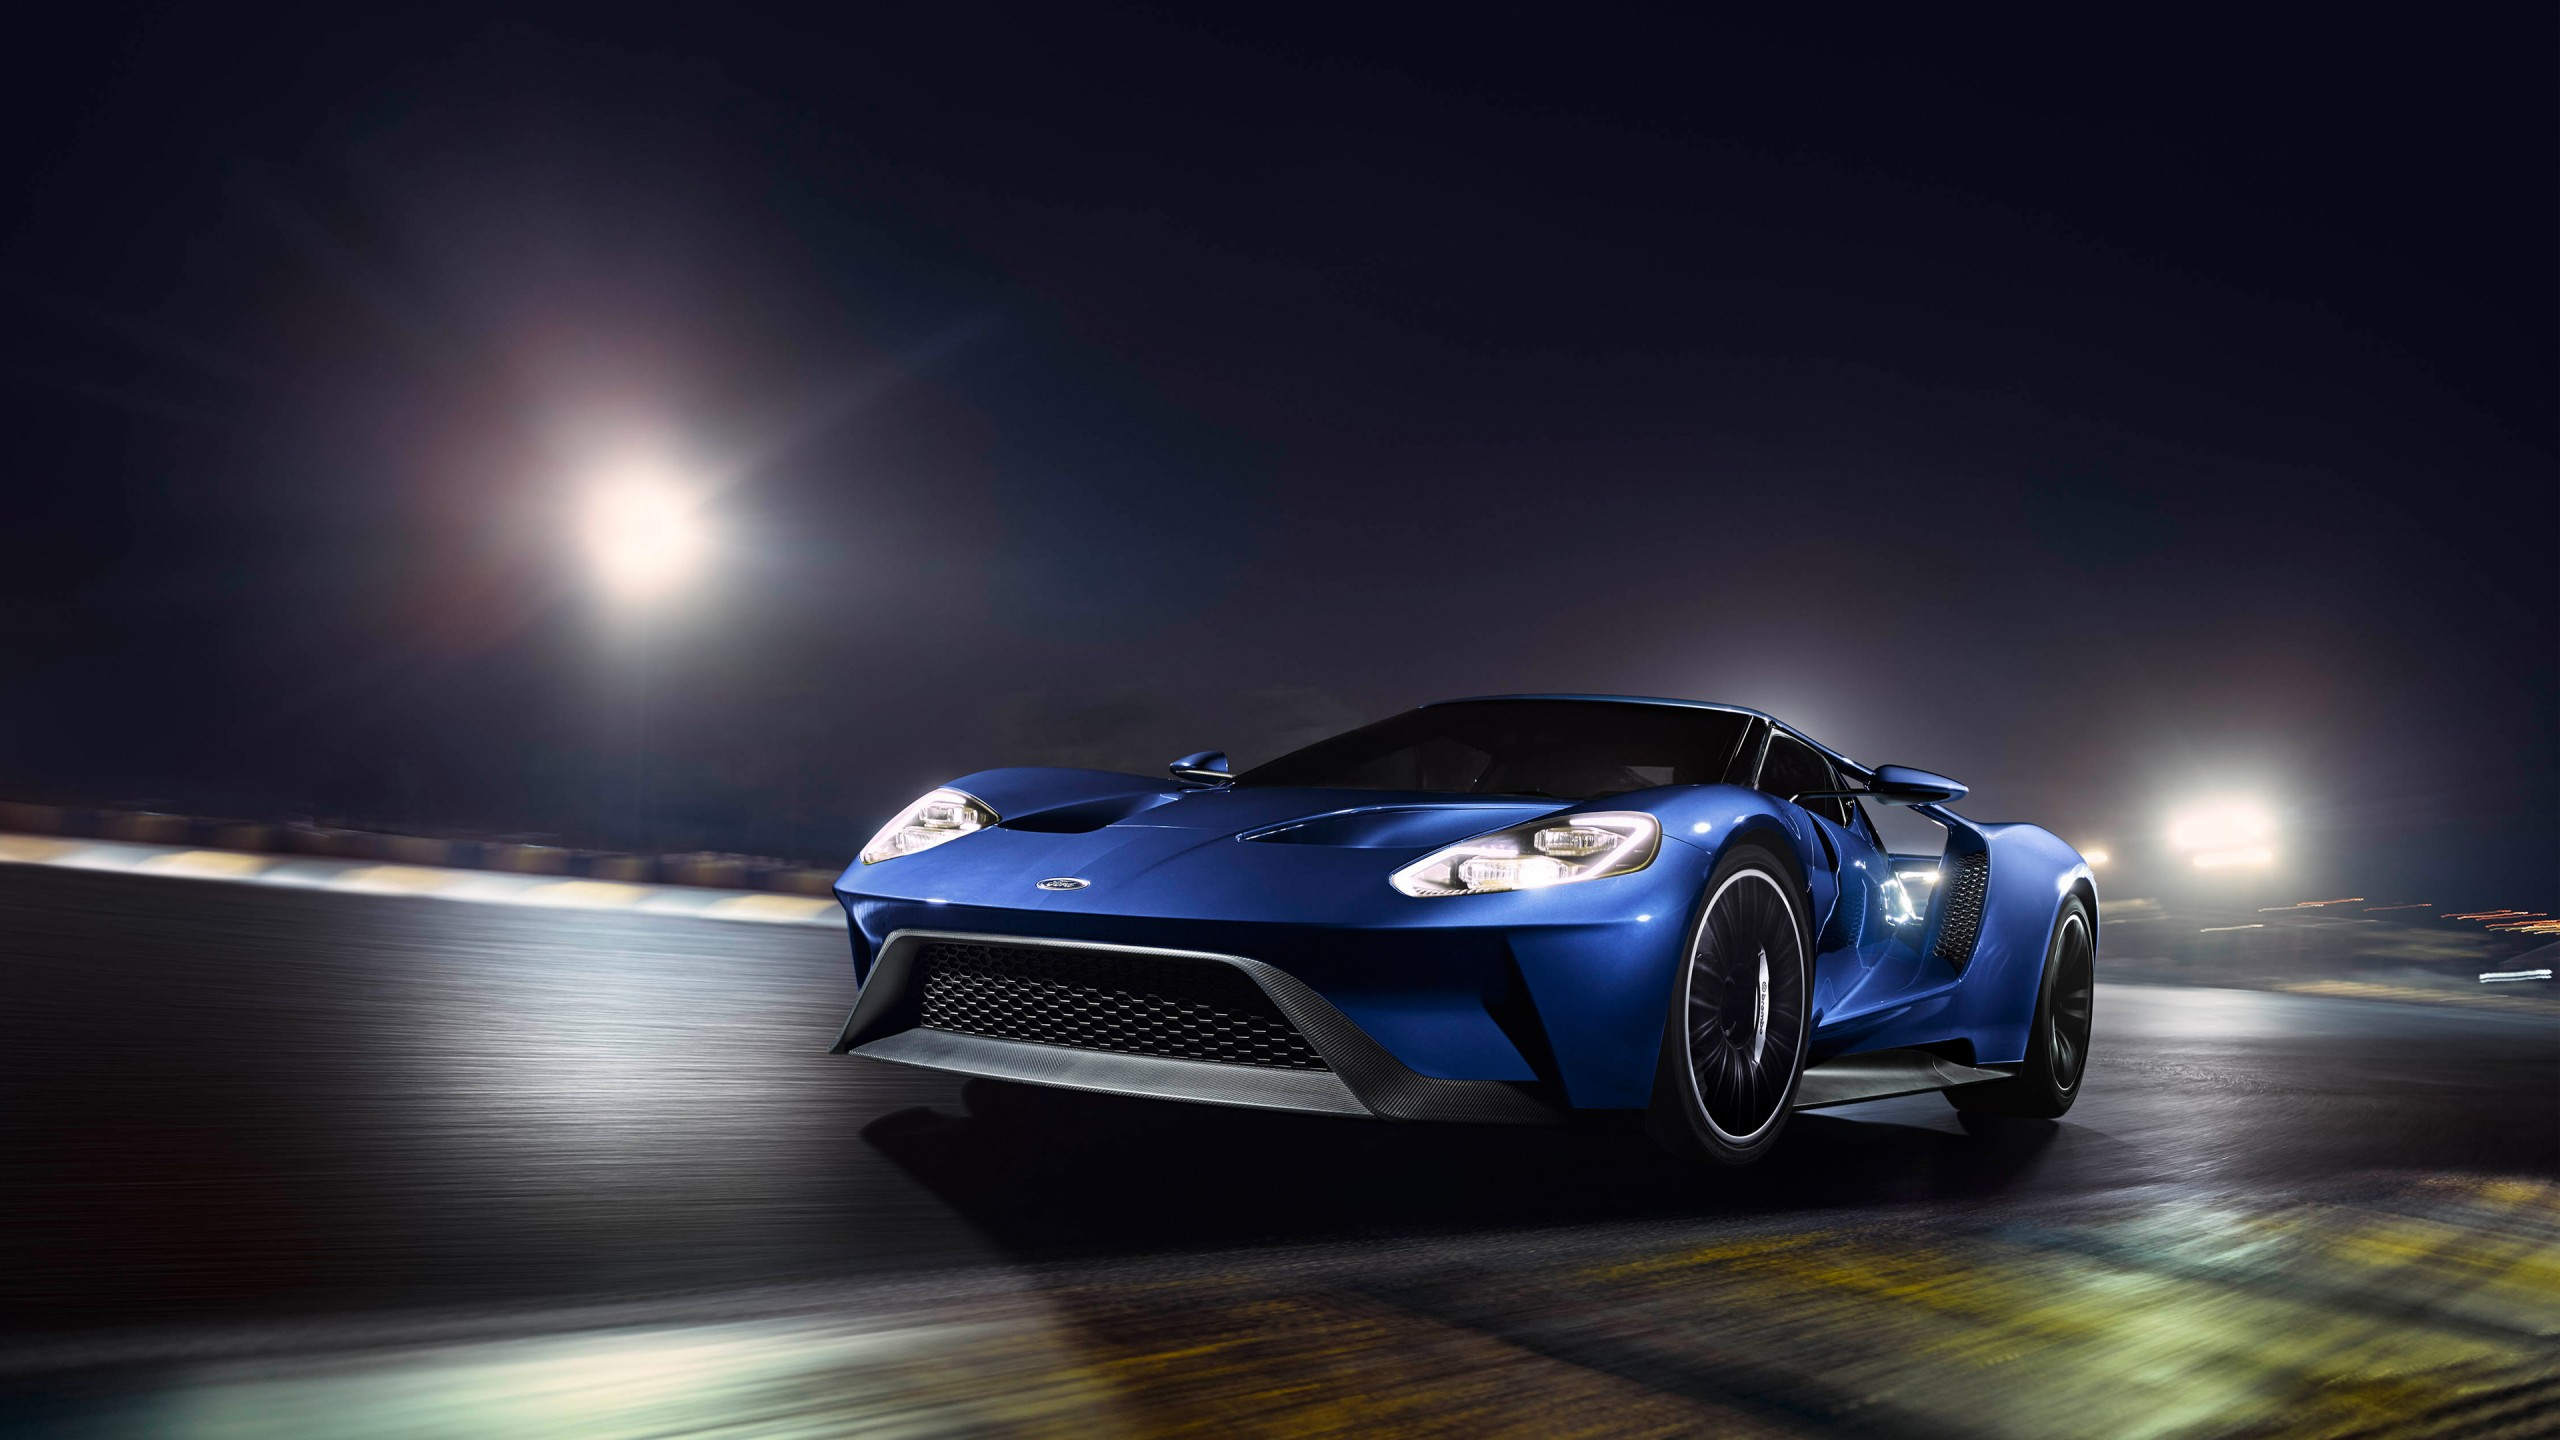 Ford F 150 Shelby >> 2017 Ford GT HD Wallpaper | HD Car Wallpapers | ID #6695